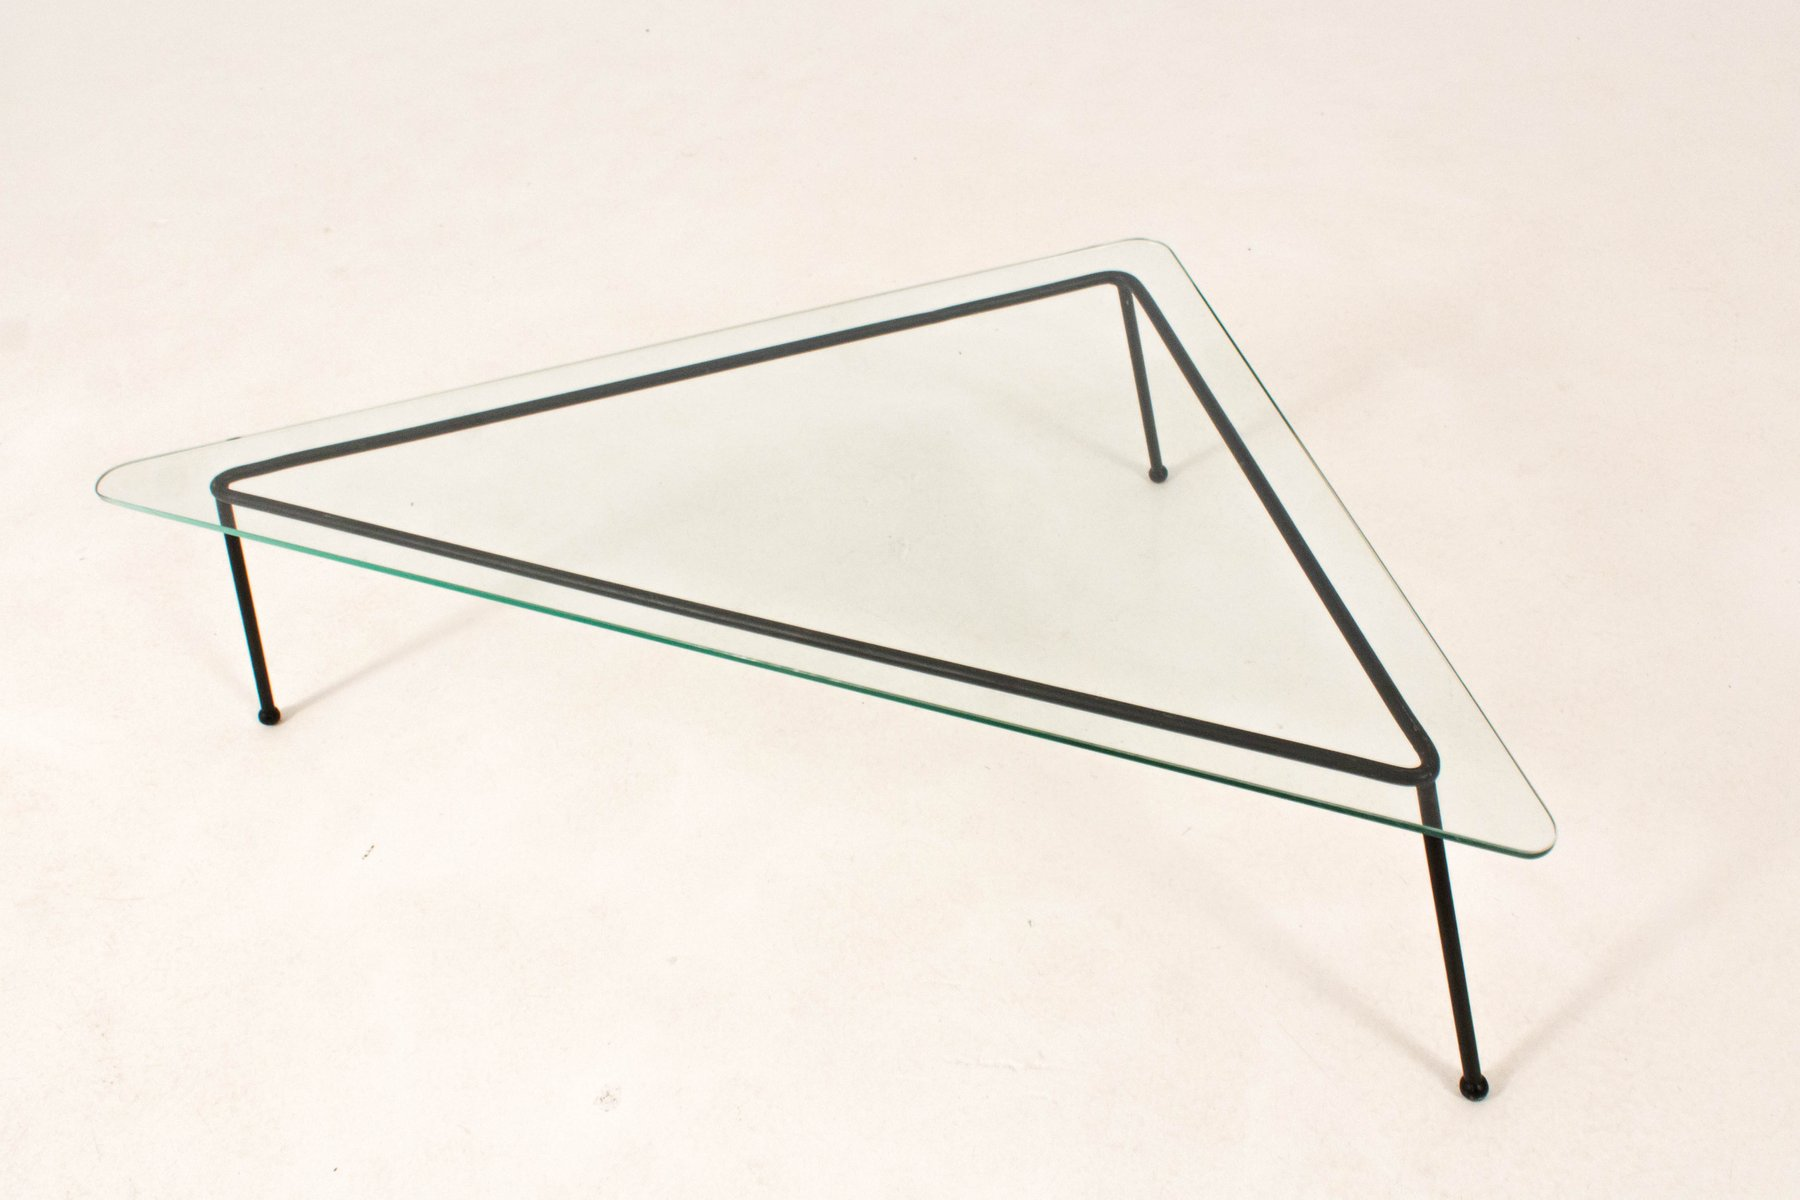 Mid Century Modern Triangular Coffee Table 1960s for sale at Pamono